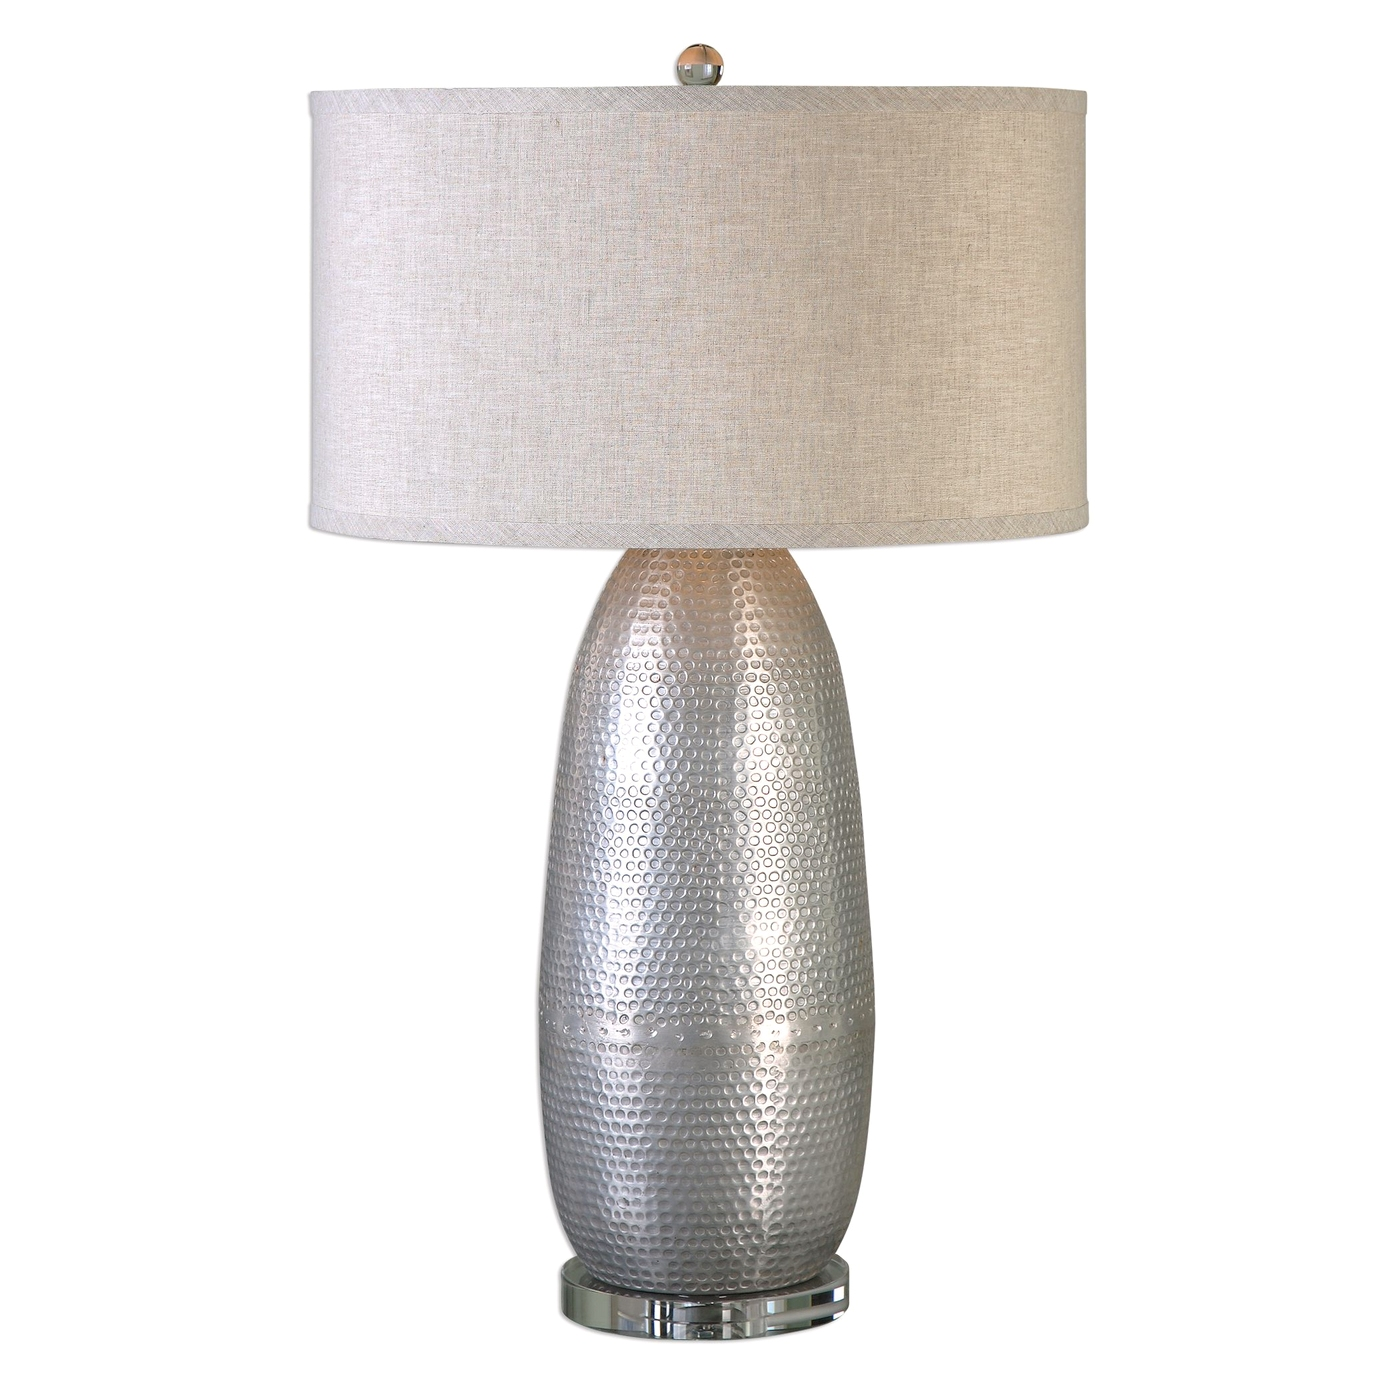 Tartaro Hammered Iron Table Lamp In Industrial Silver With